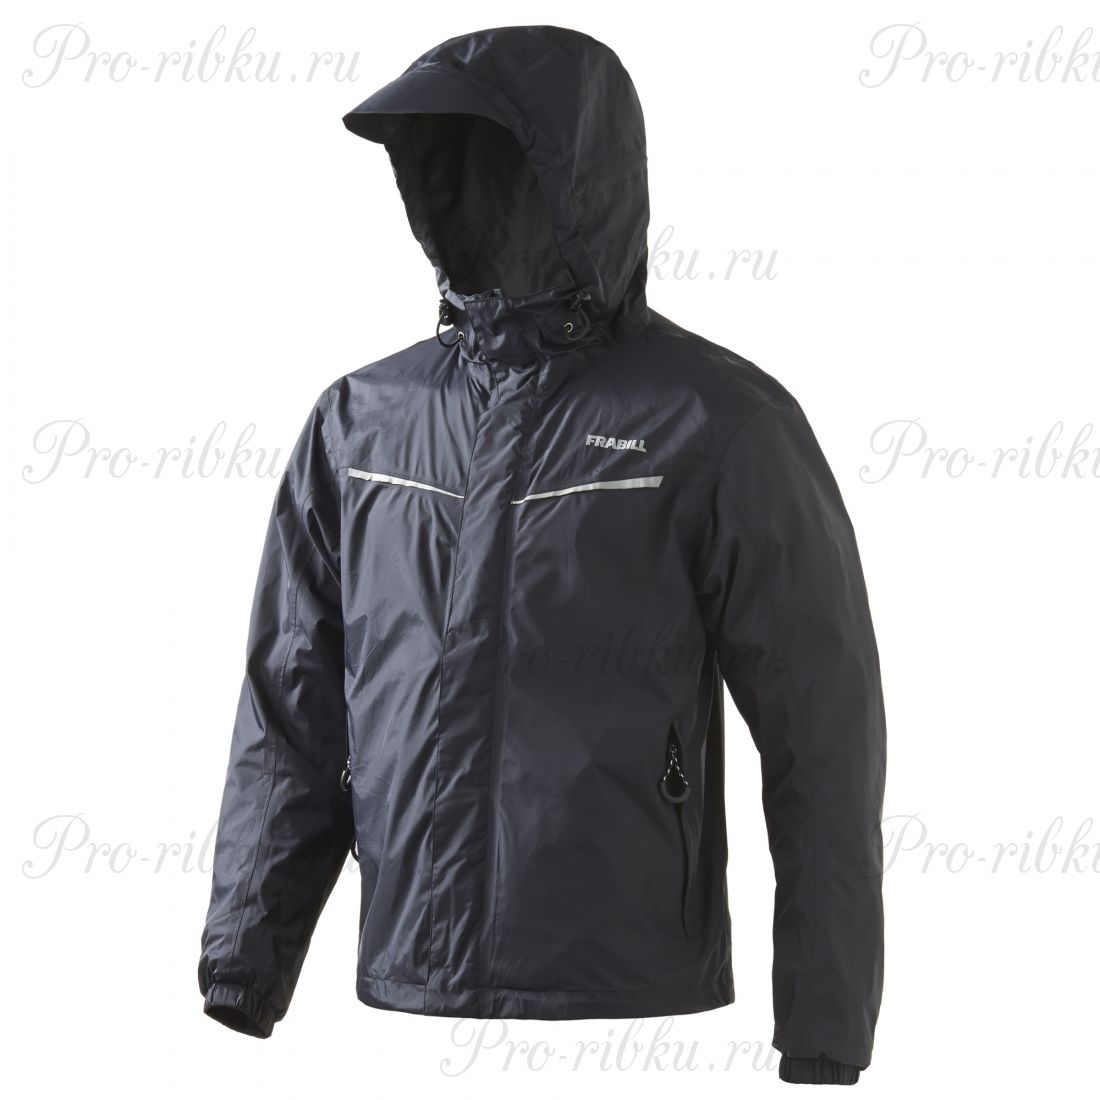 Куртка штормовая FRABILL Stow Jacket Black, р. S